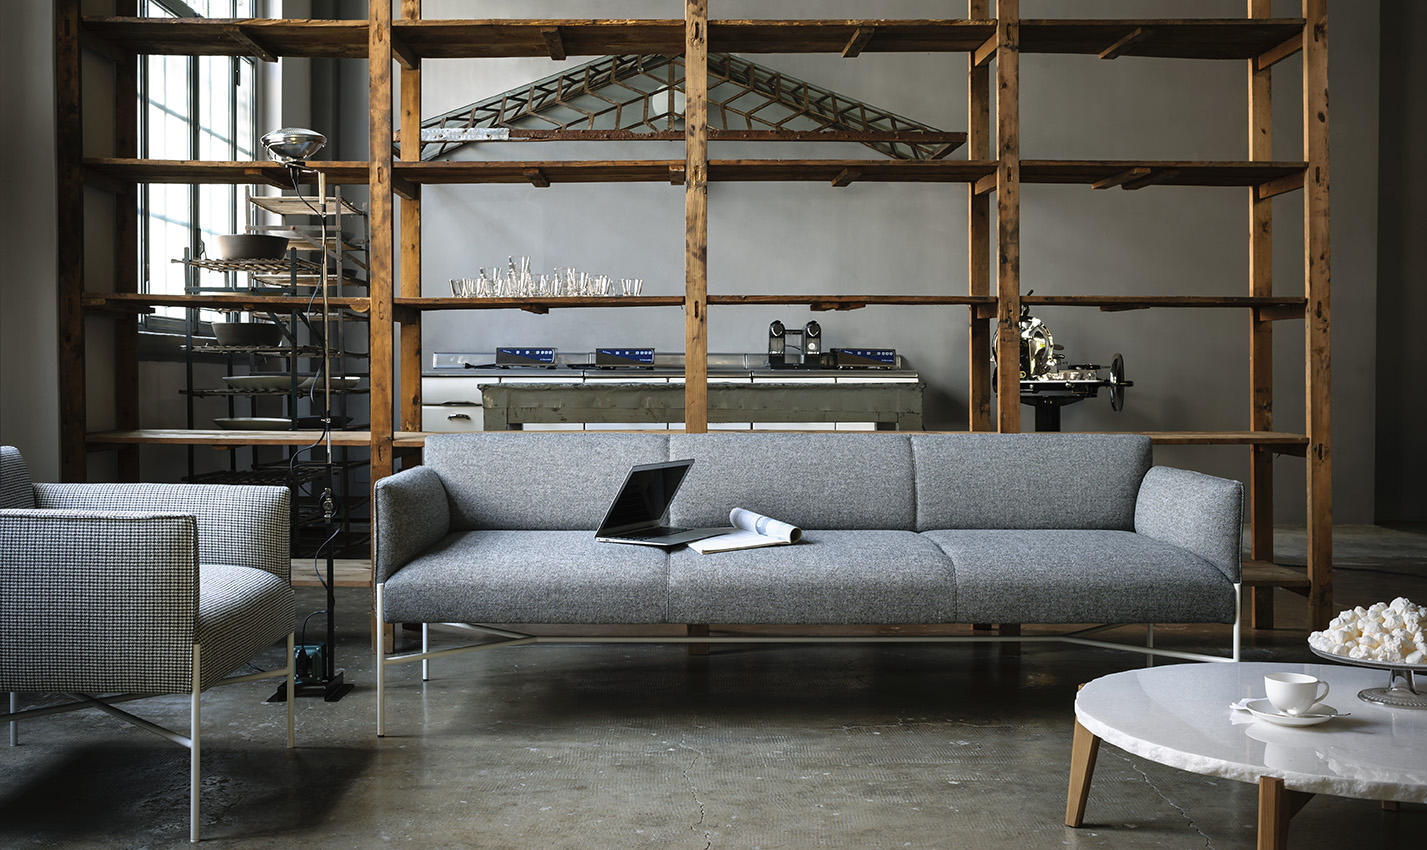 Chill out high modular seating systems from tacchini for Sofas de italia